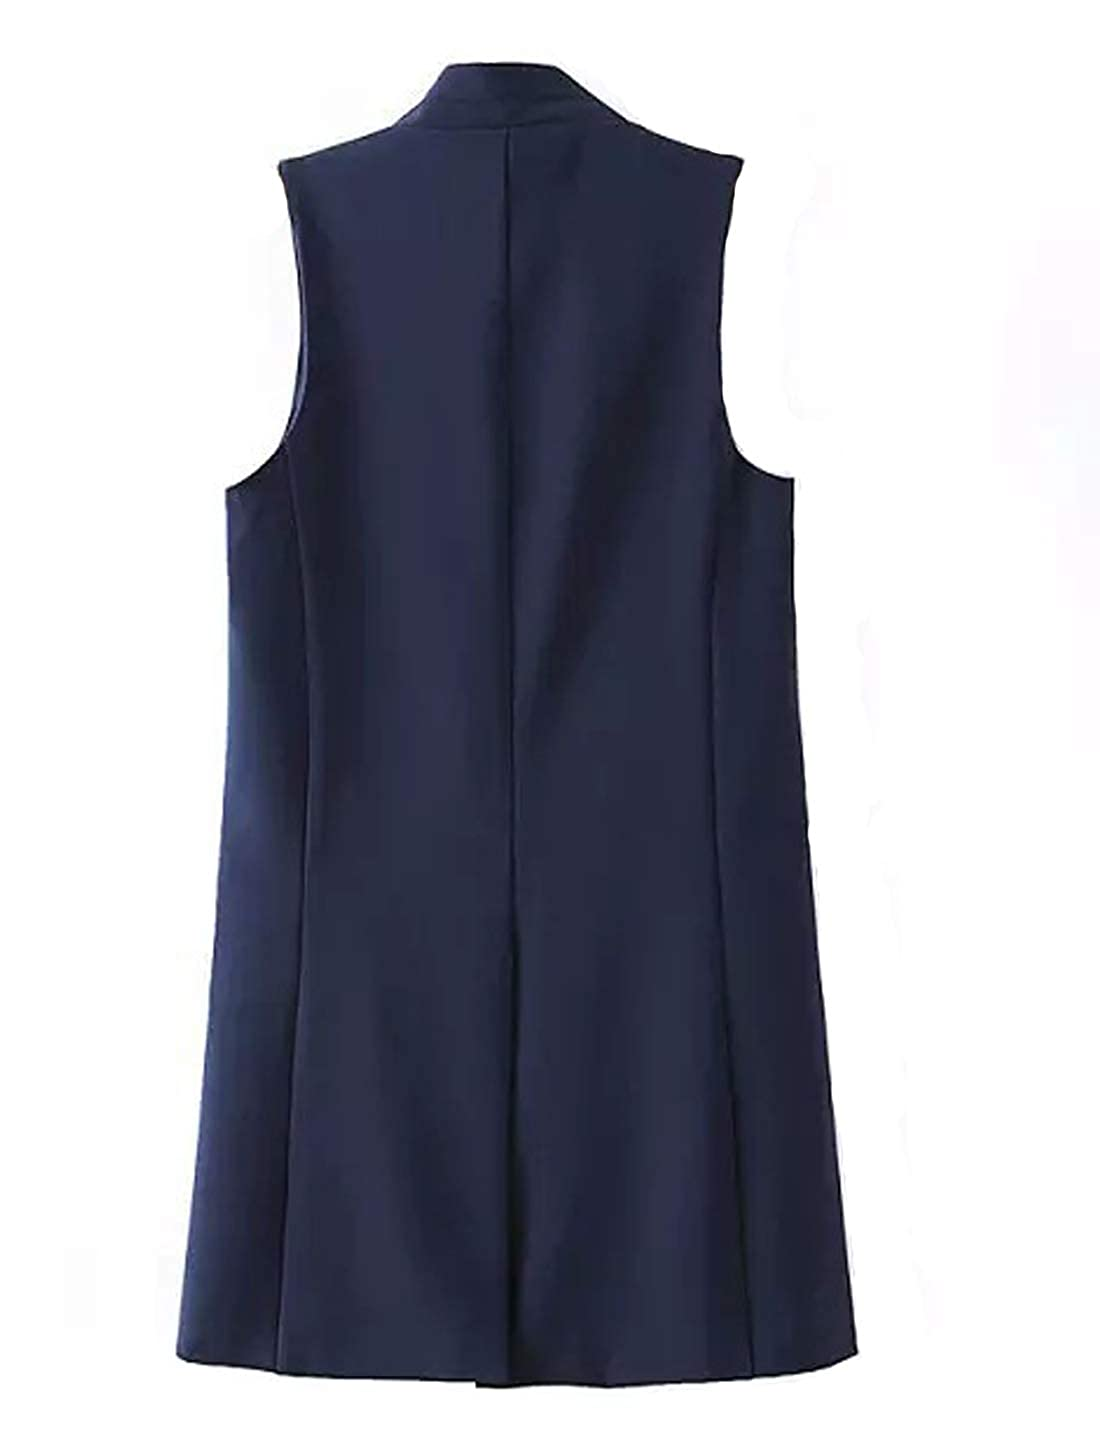 D.B.M Womens Euro Simple Solid Color Stand Collar Sleeveless Long Vest